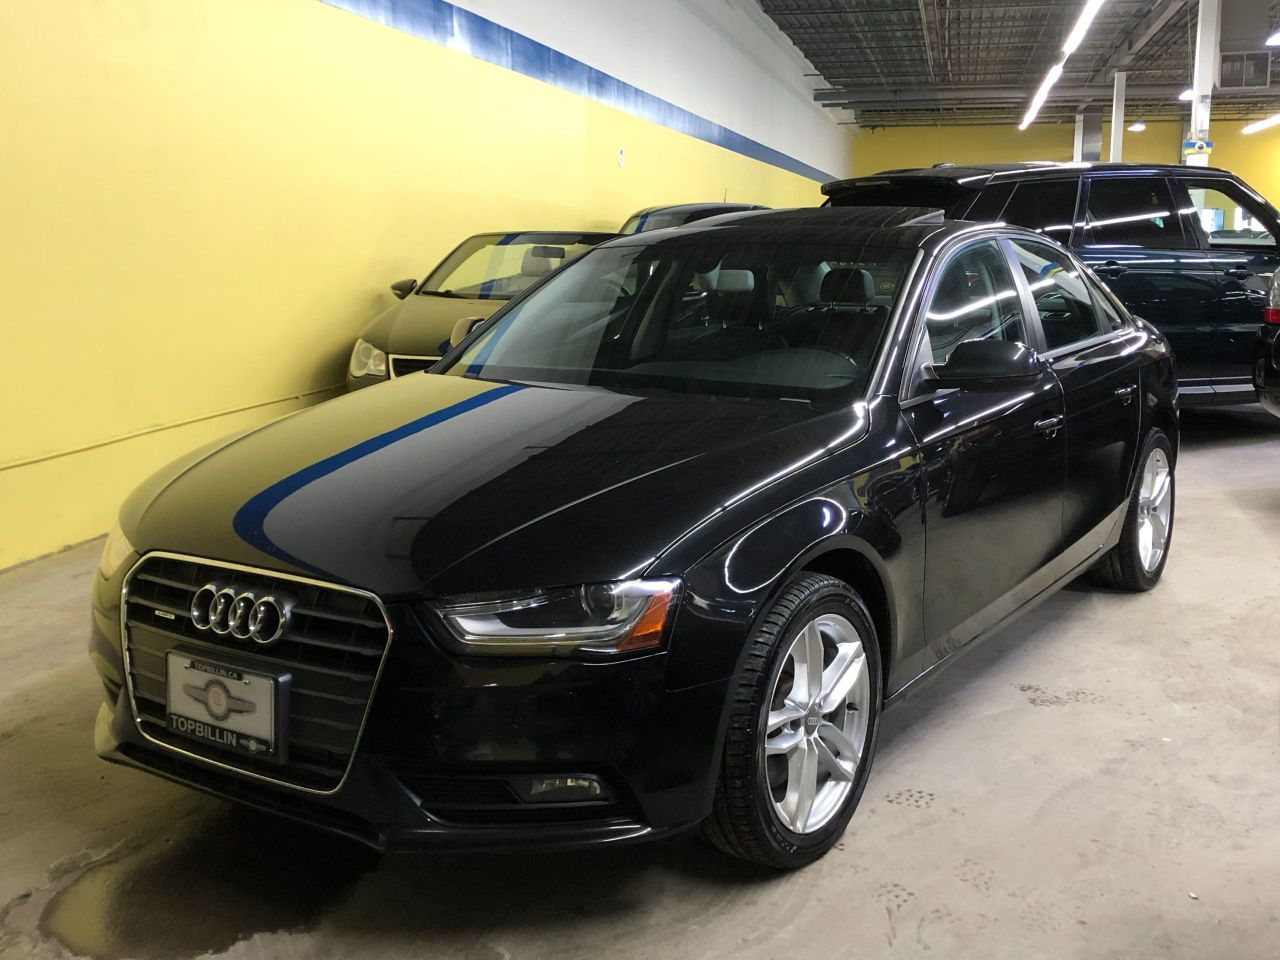 2013 Audi A4 Premium AWD, 6 Speed, Sunroof, Leather